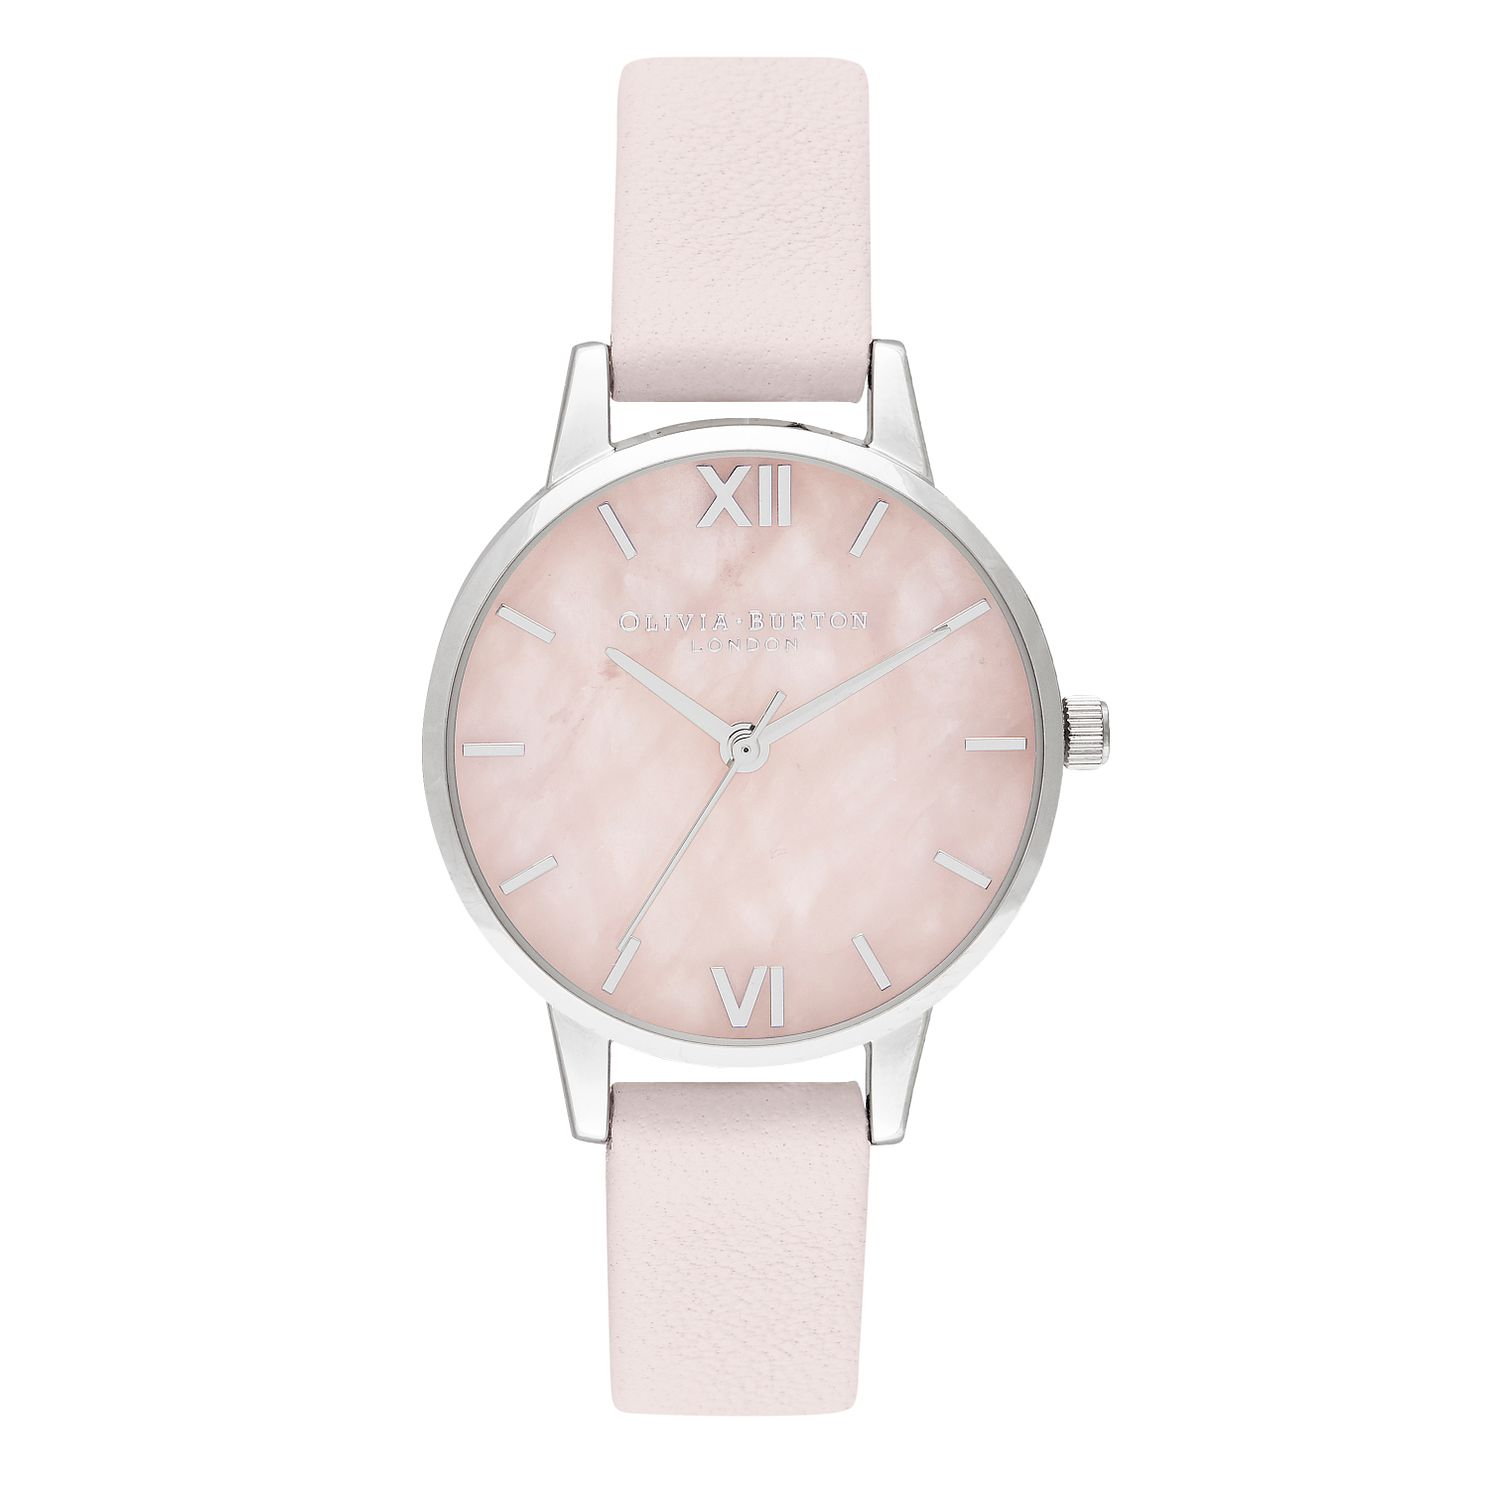 Olivia Burton Semi Precious Blush Pink Leather Strap Watch - Product number 9791221